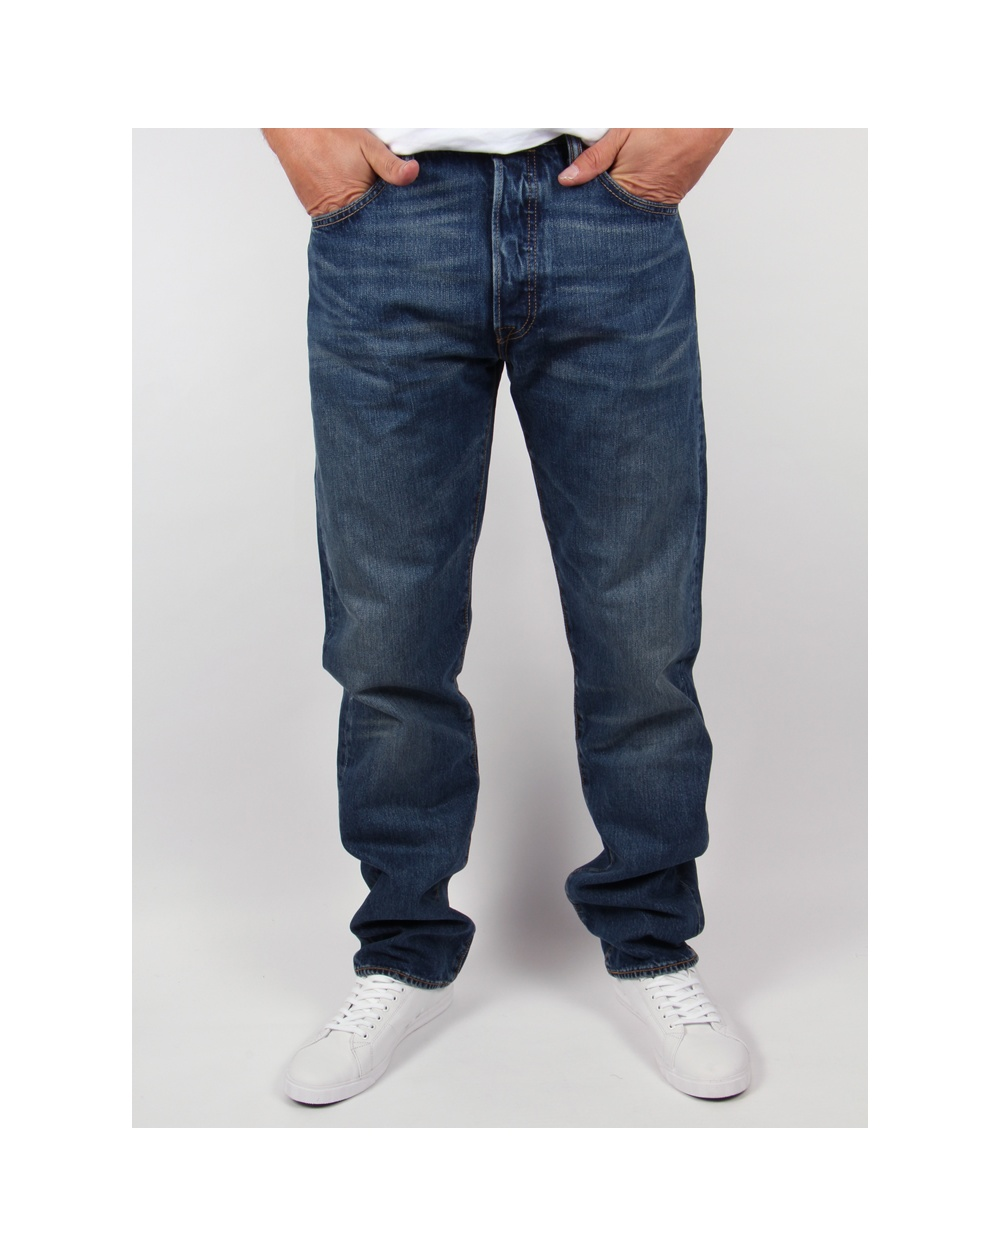 Levis 501 Original Fit Jeans Hook Denim Mens Straight